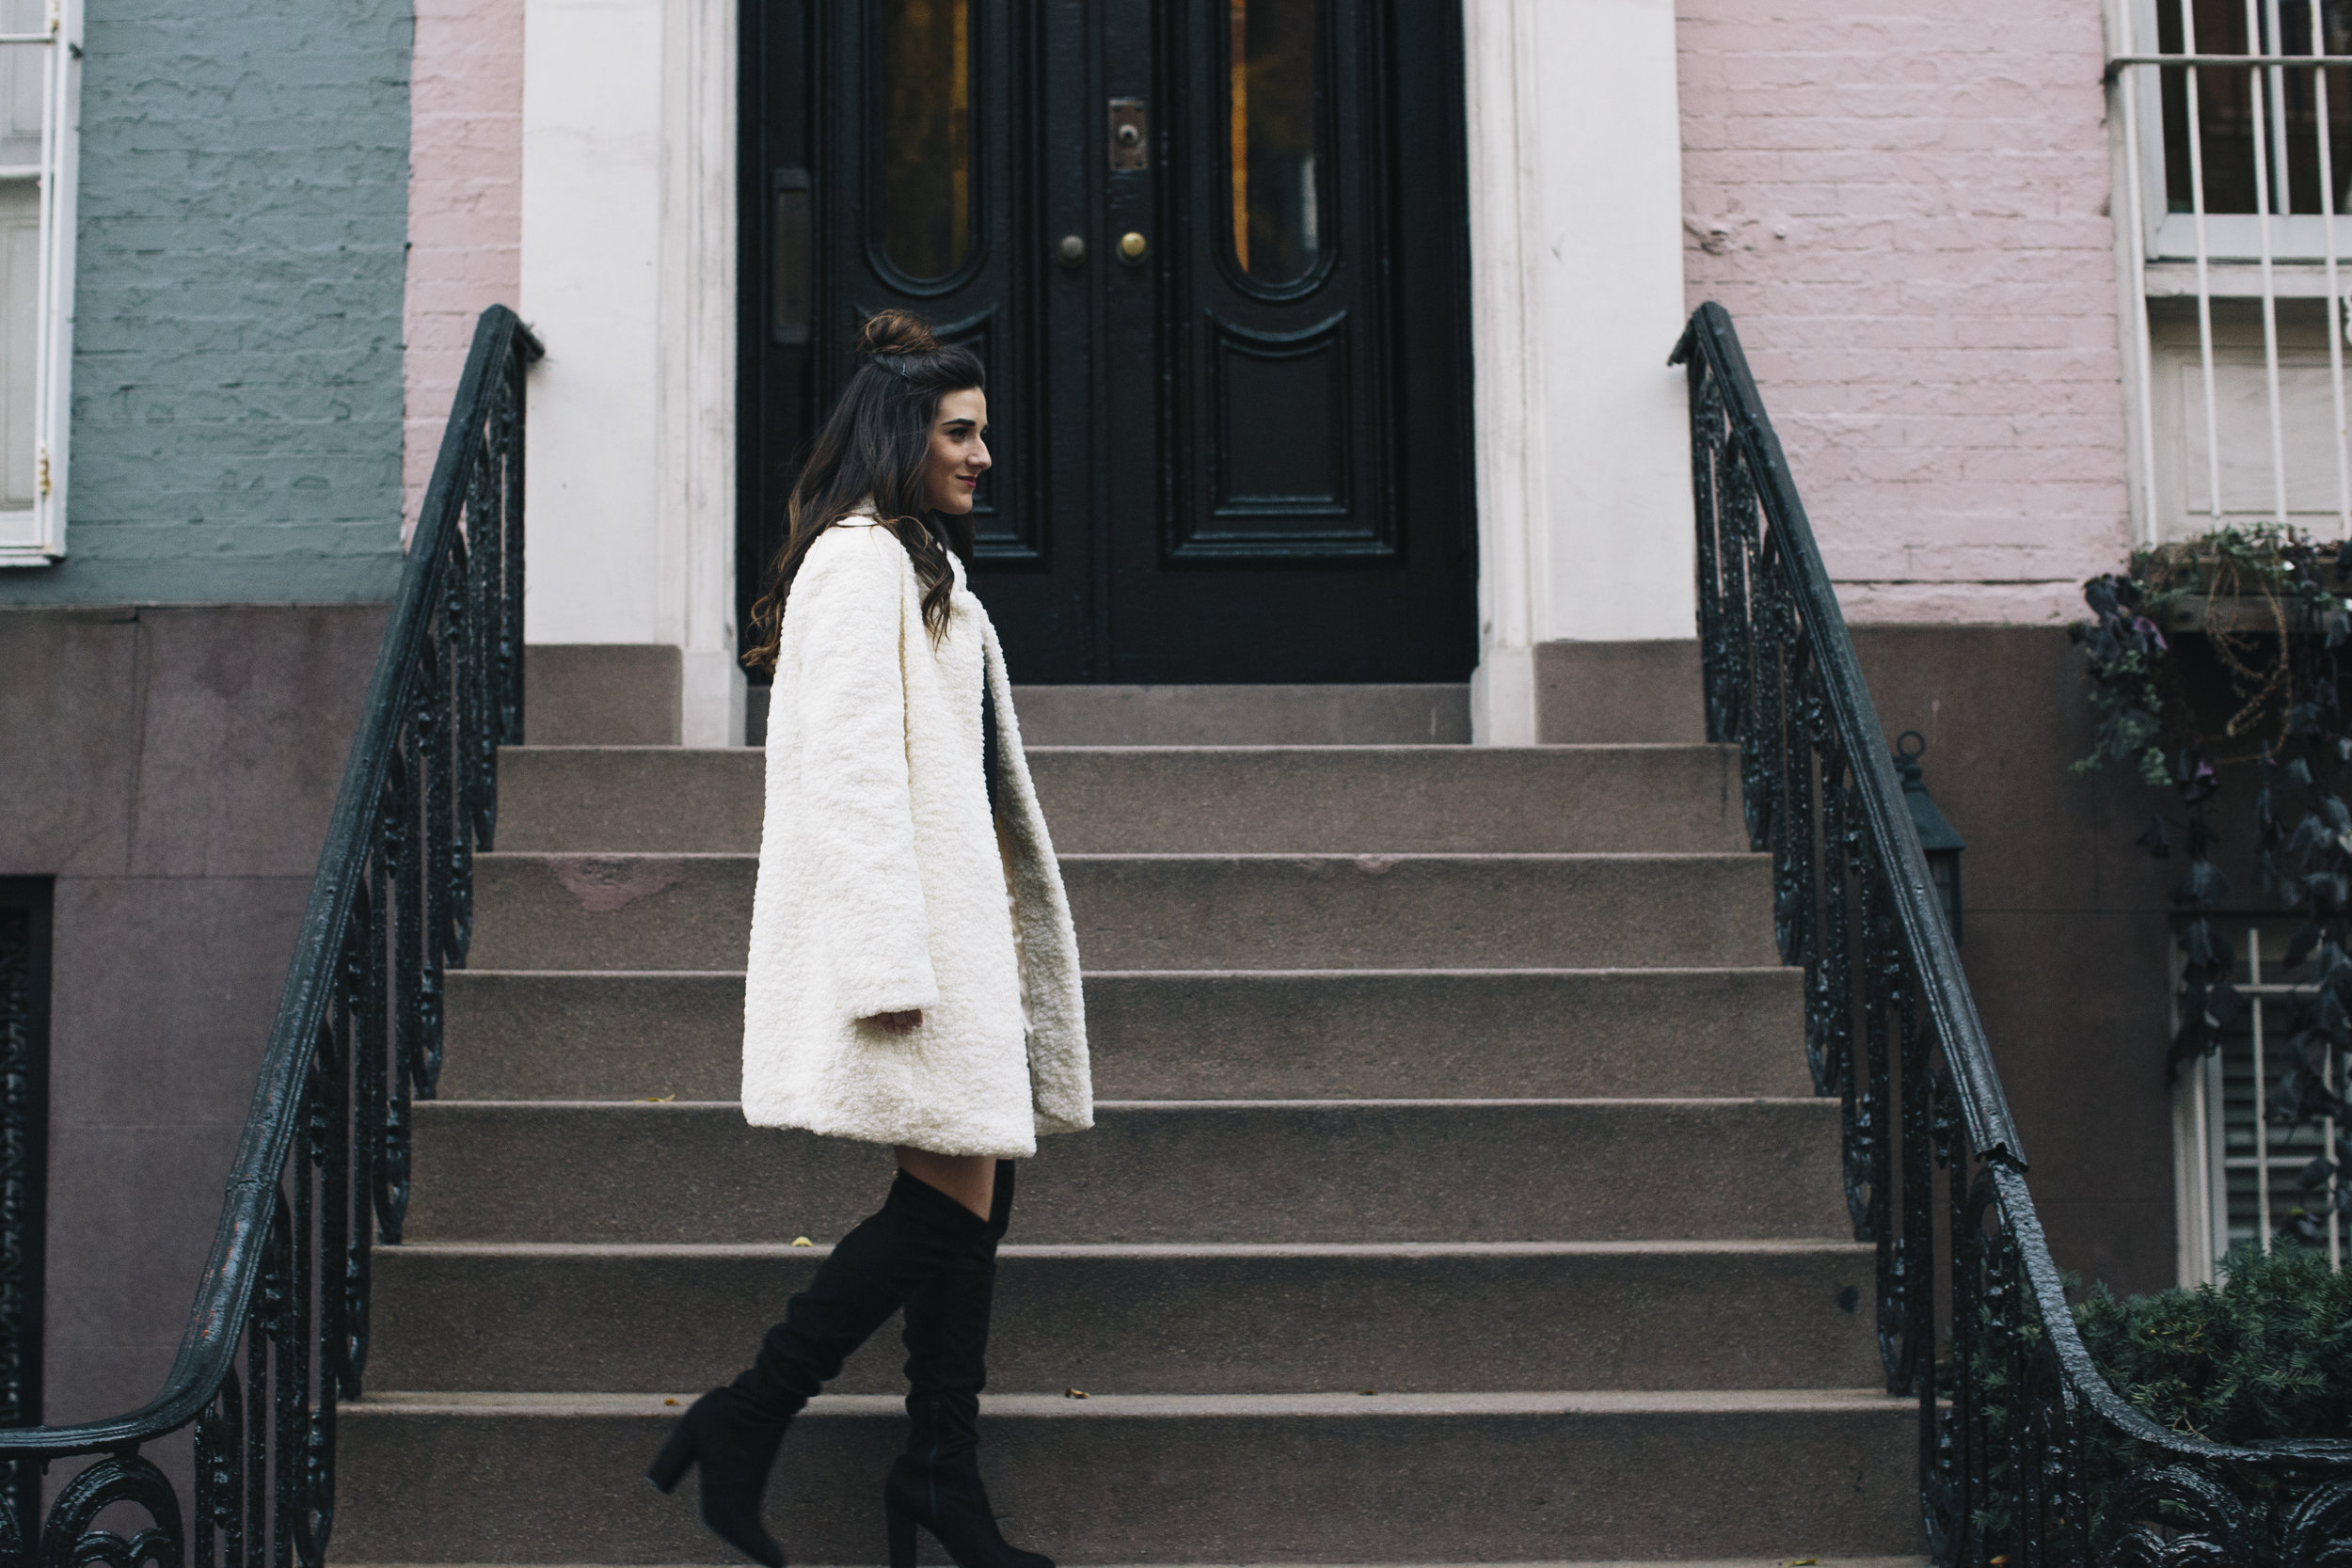 Teddy Bear Coat + OTN Boots How To Avoid Blogger Depression Louboutins & Love Fashion Blog Esther Santer NYC Street Style Blogger Outfit OOTD Trendy Ivanka Trump Nordstrom Bloomingdales Black Dress Zara Pretty Online Shopping Shoes Wear Bun Girl Women.jpg